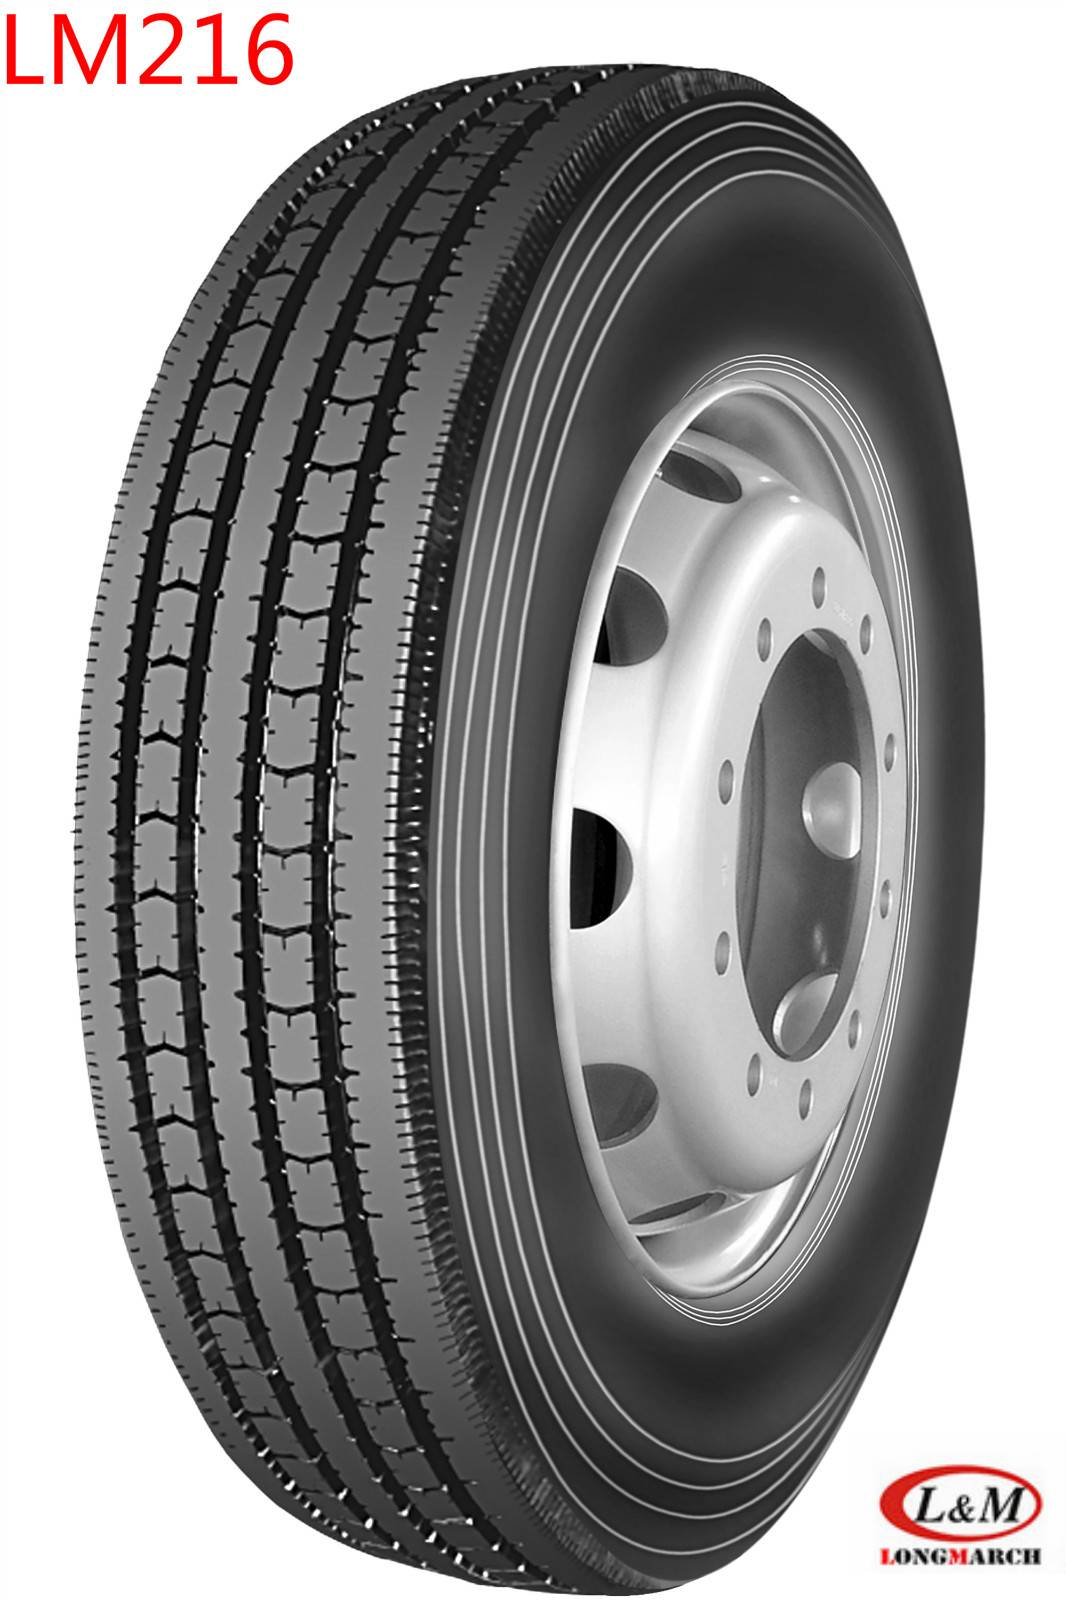 Long March Radial Truck Tire with All Kinds of Certificates (275/80R22.5/LM216)